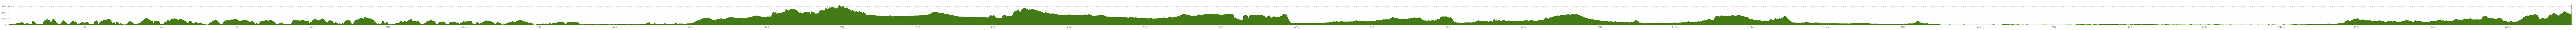 Elevation profile Cycle Tour Roscoff - Aachen